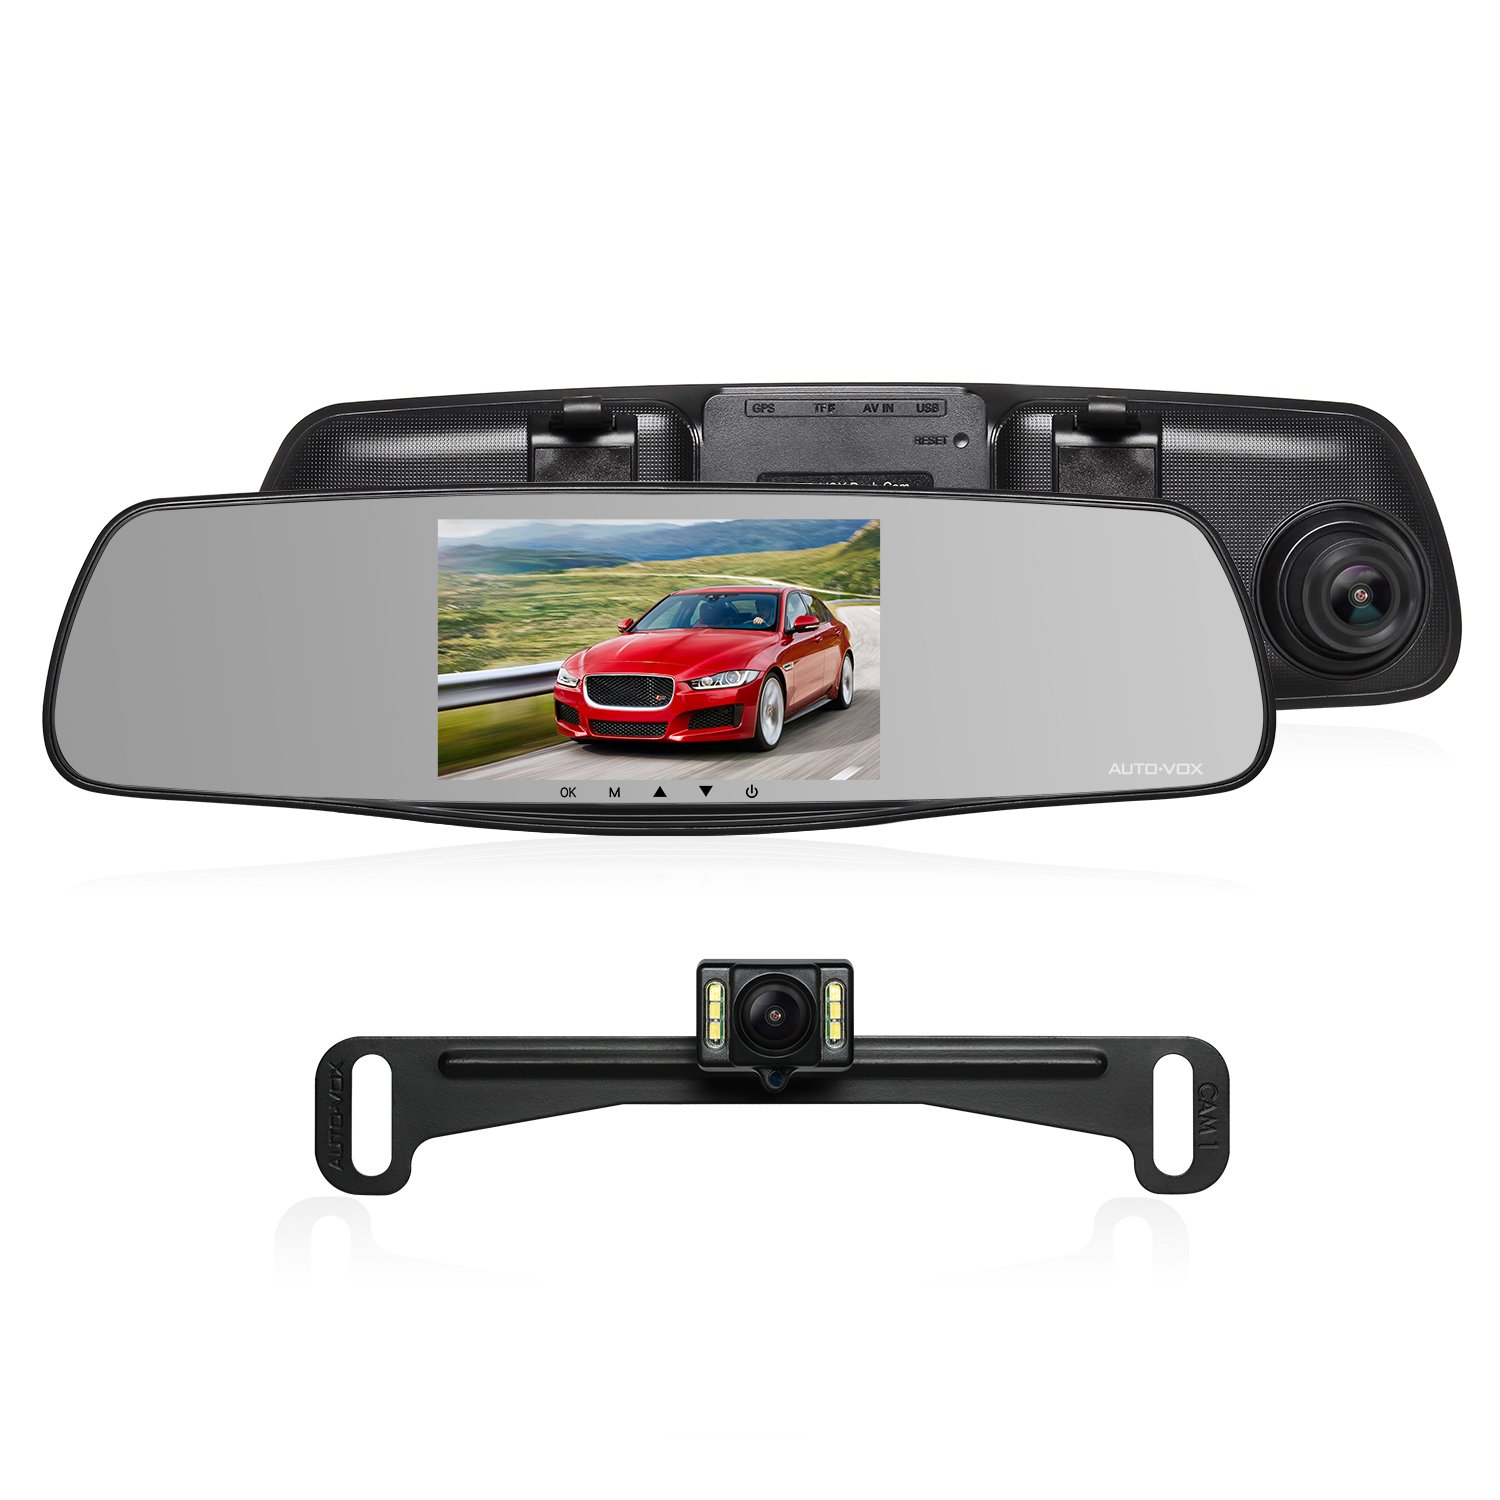 Amazoncom AUTOVOX M Dual Lens Dash Cam LCD Full HD P - Car signs on dashboardlets be honest you have no idea what your car dashboard signs